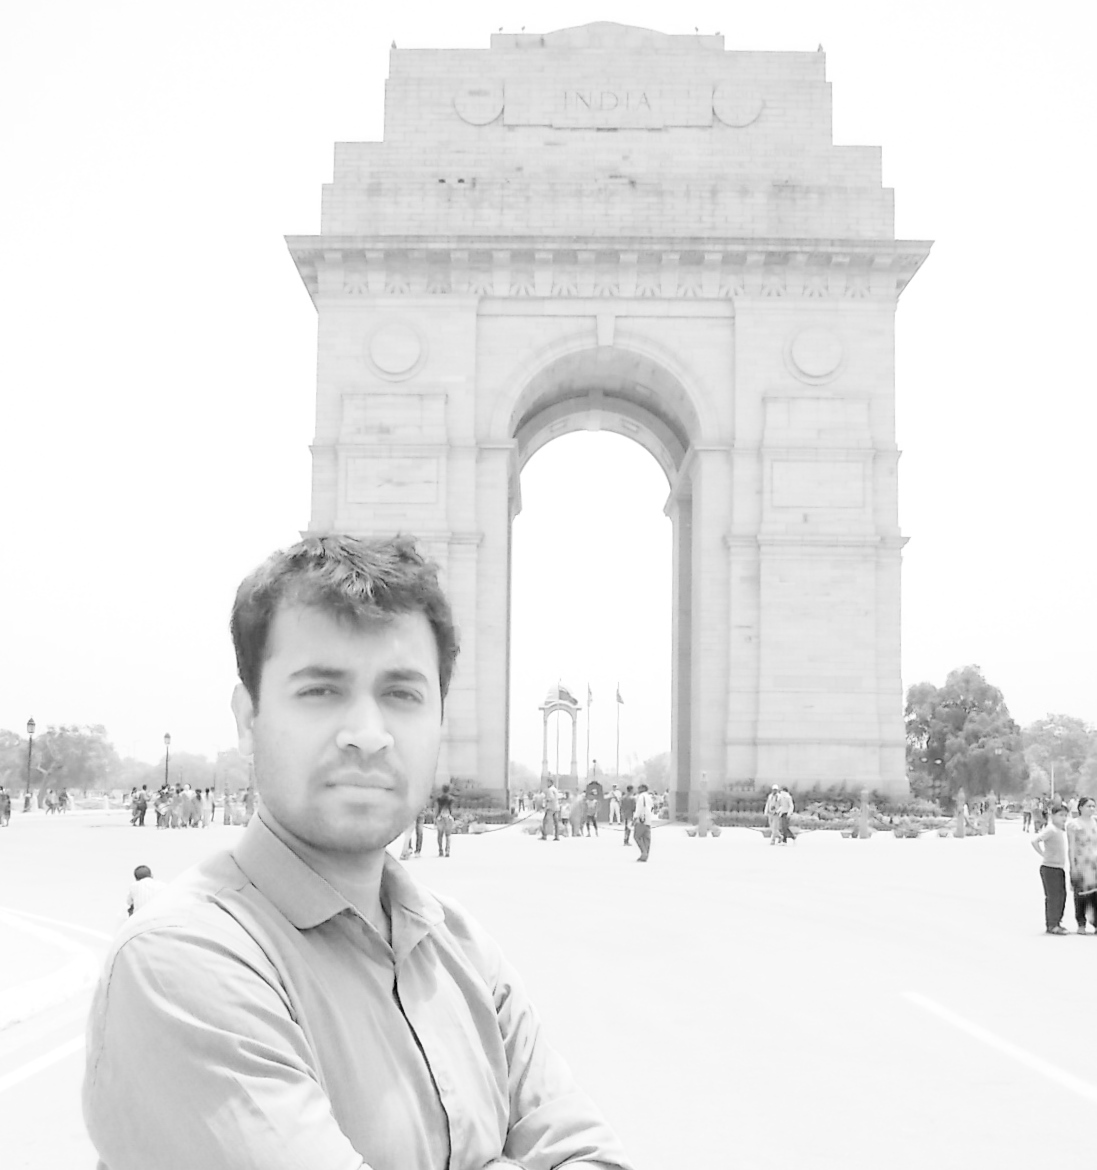 India gate Harish Goel